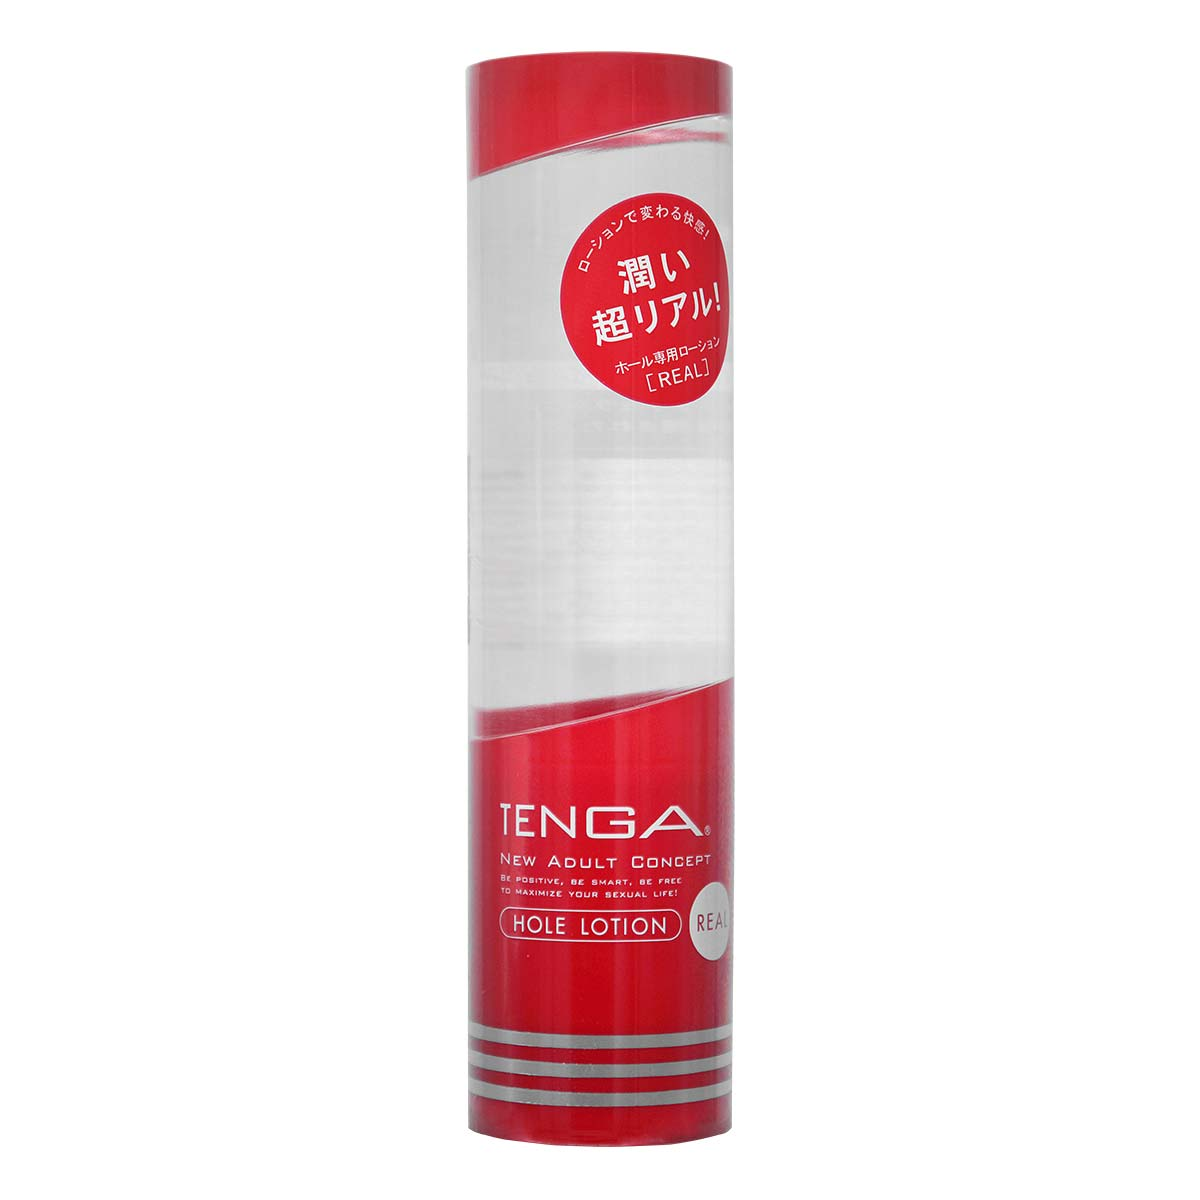 TENGA HOLE LOTION REAL 170ml 水性潤滑液